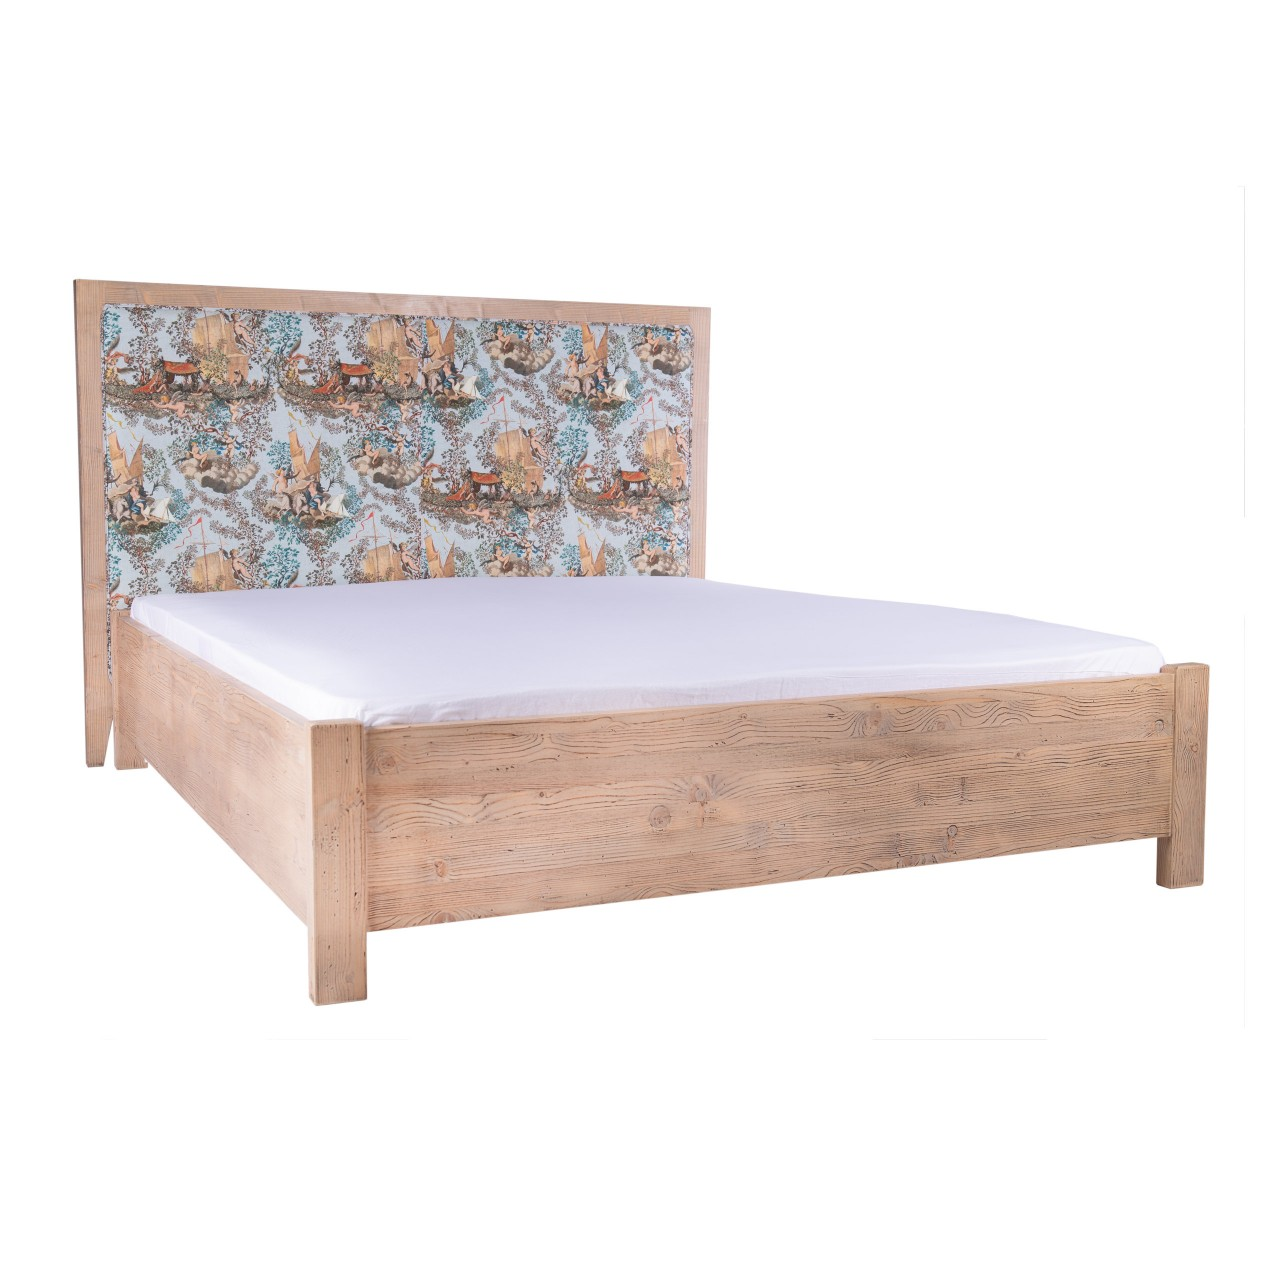 ANTAL Bed - JOURNEY TO EDEN Linen